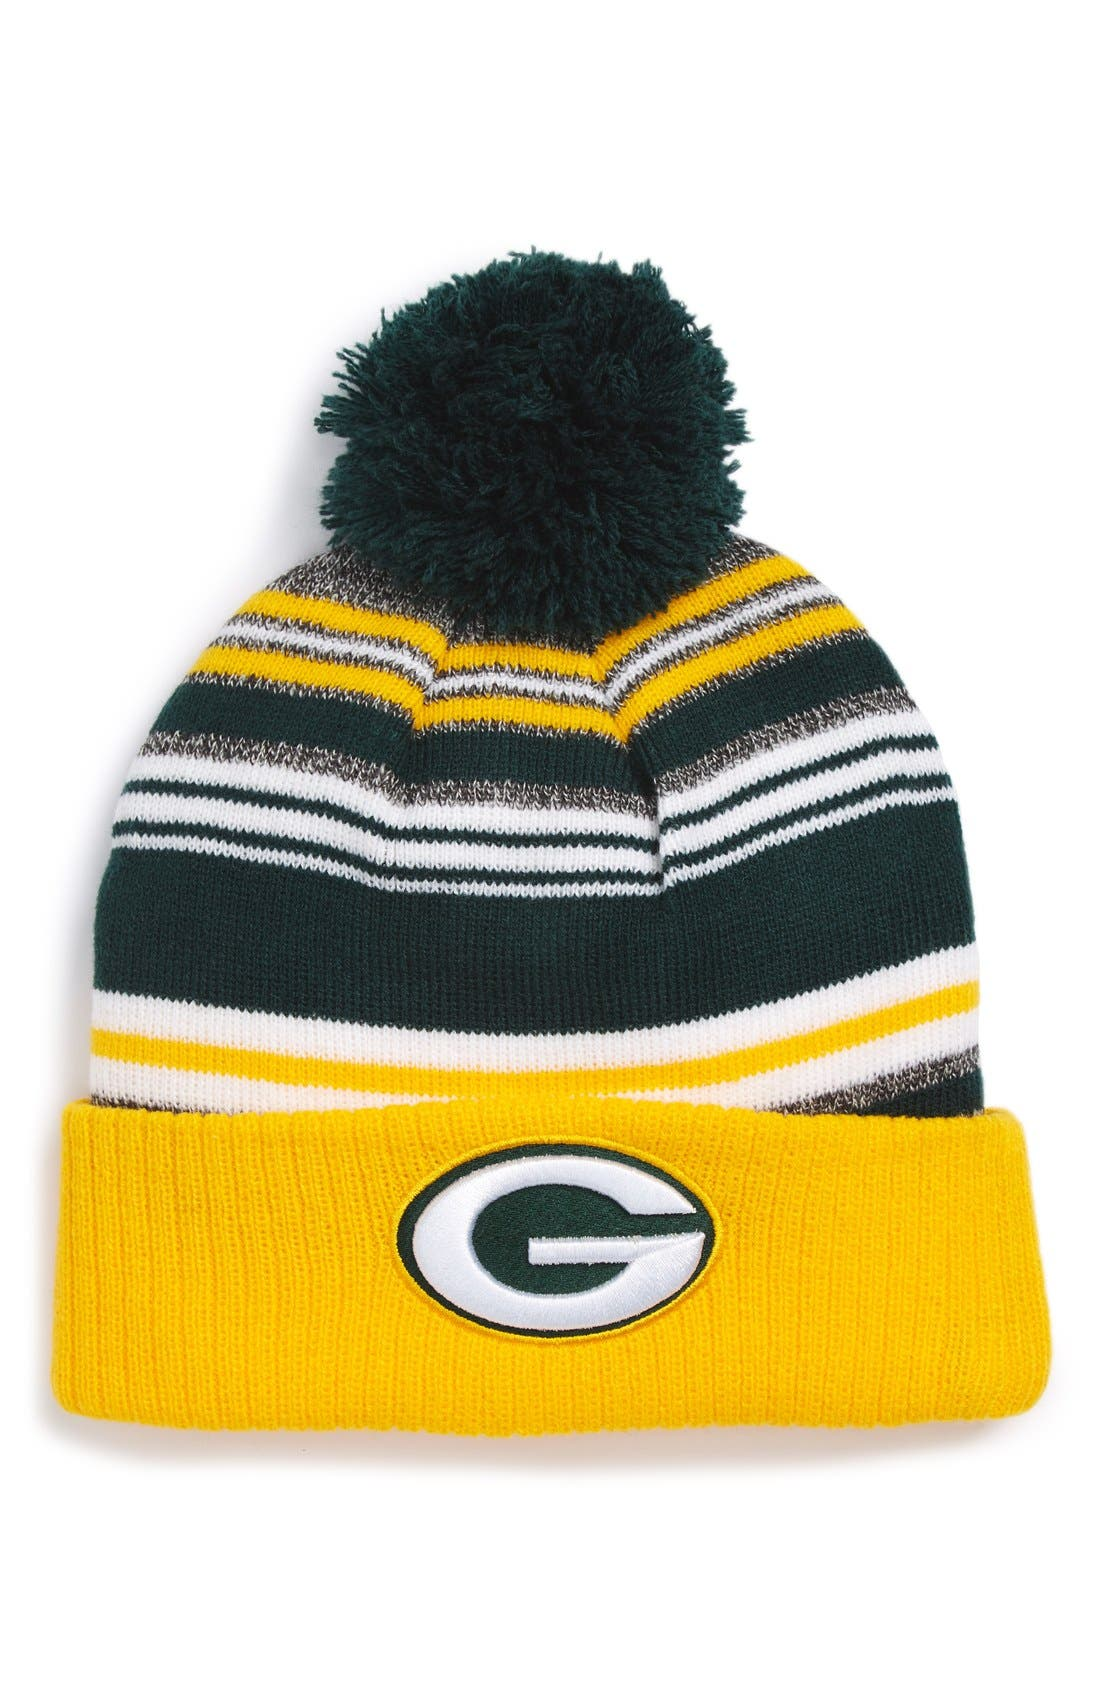 Criterion Legacy Green Bay Packers Hat,                             Main thumbnail 1, color,                             300